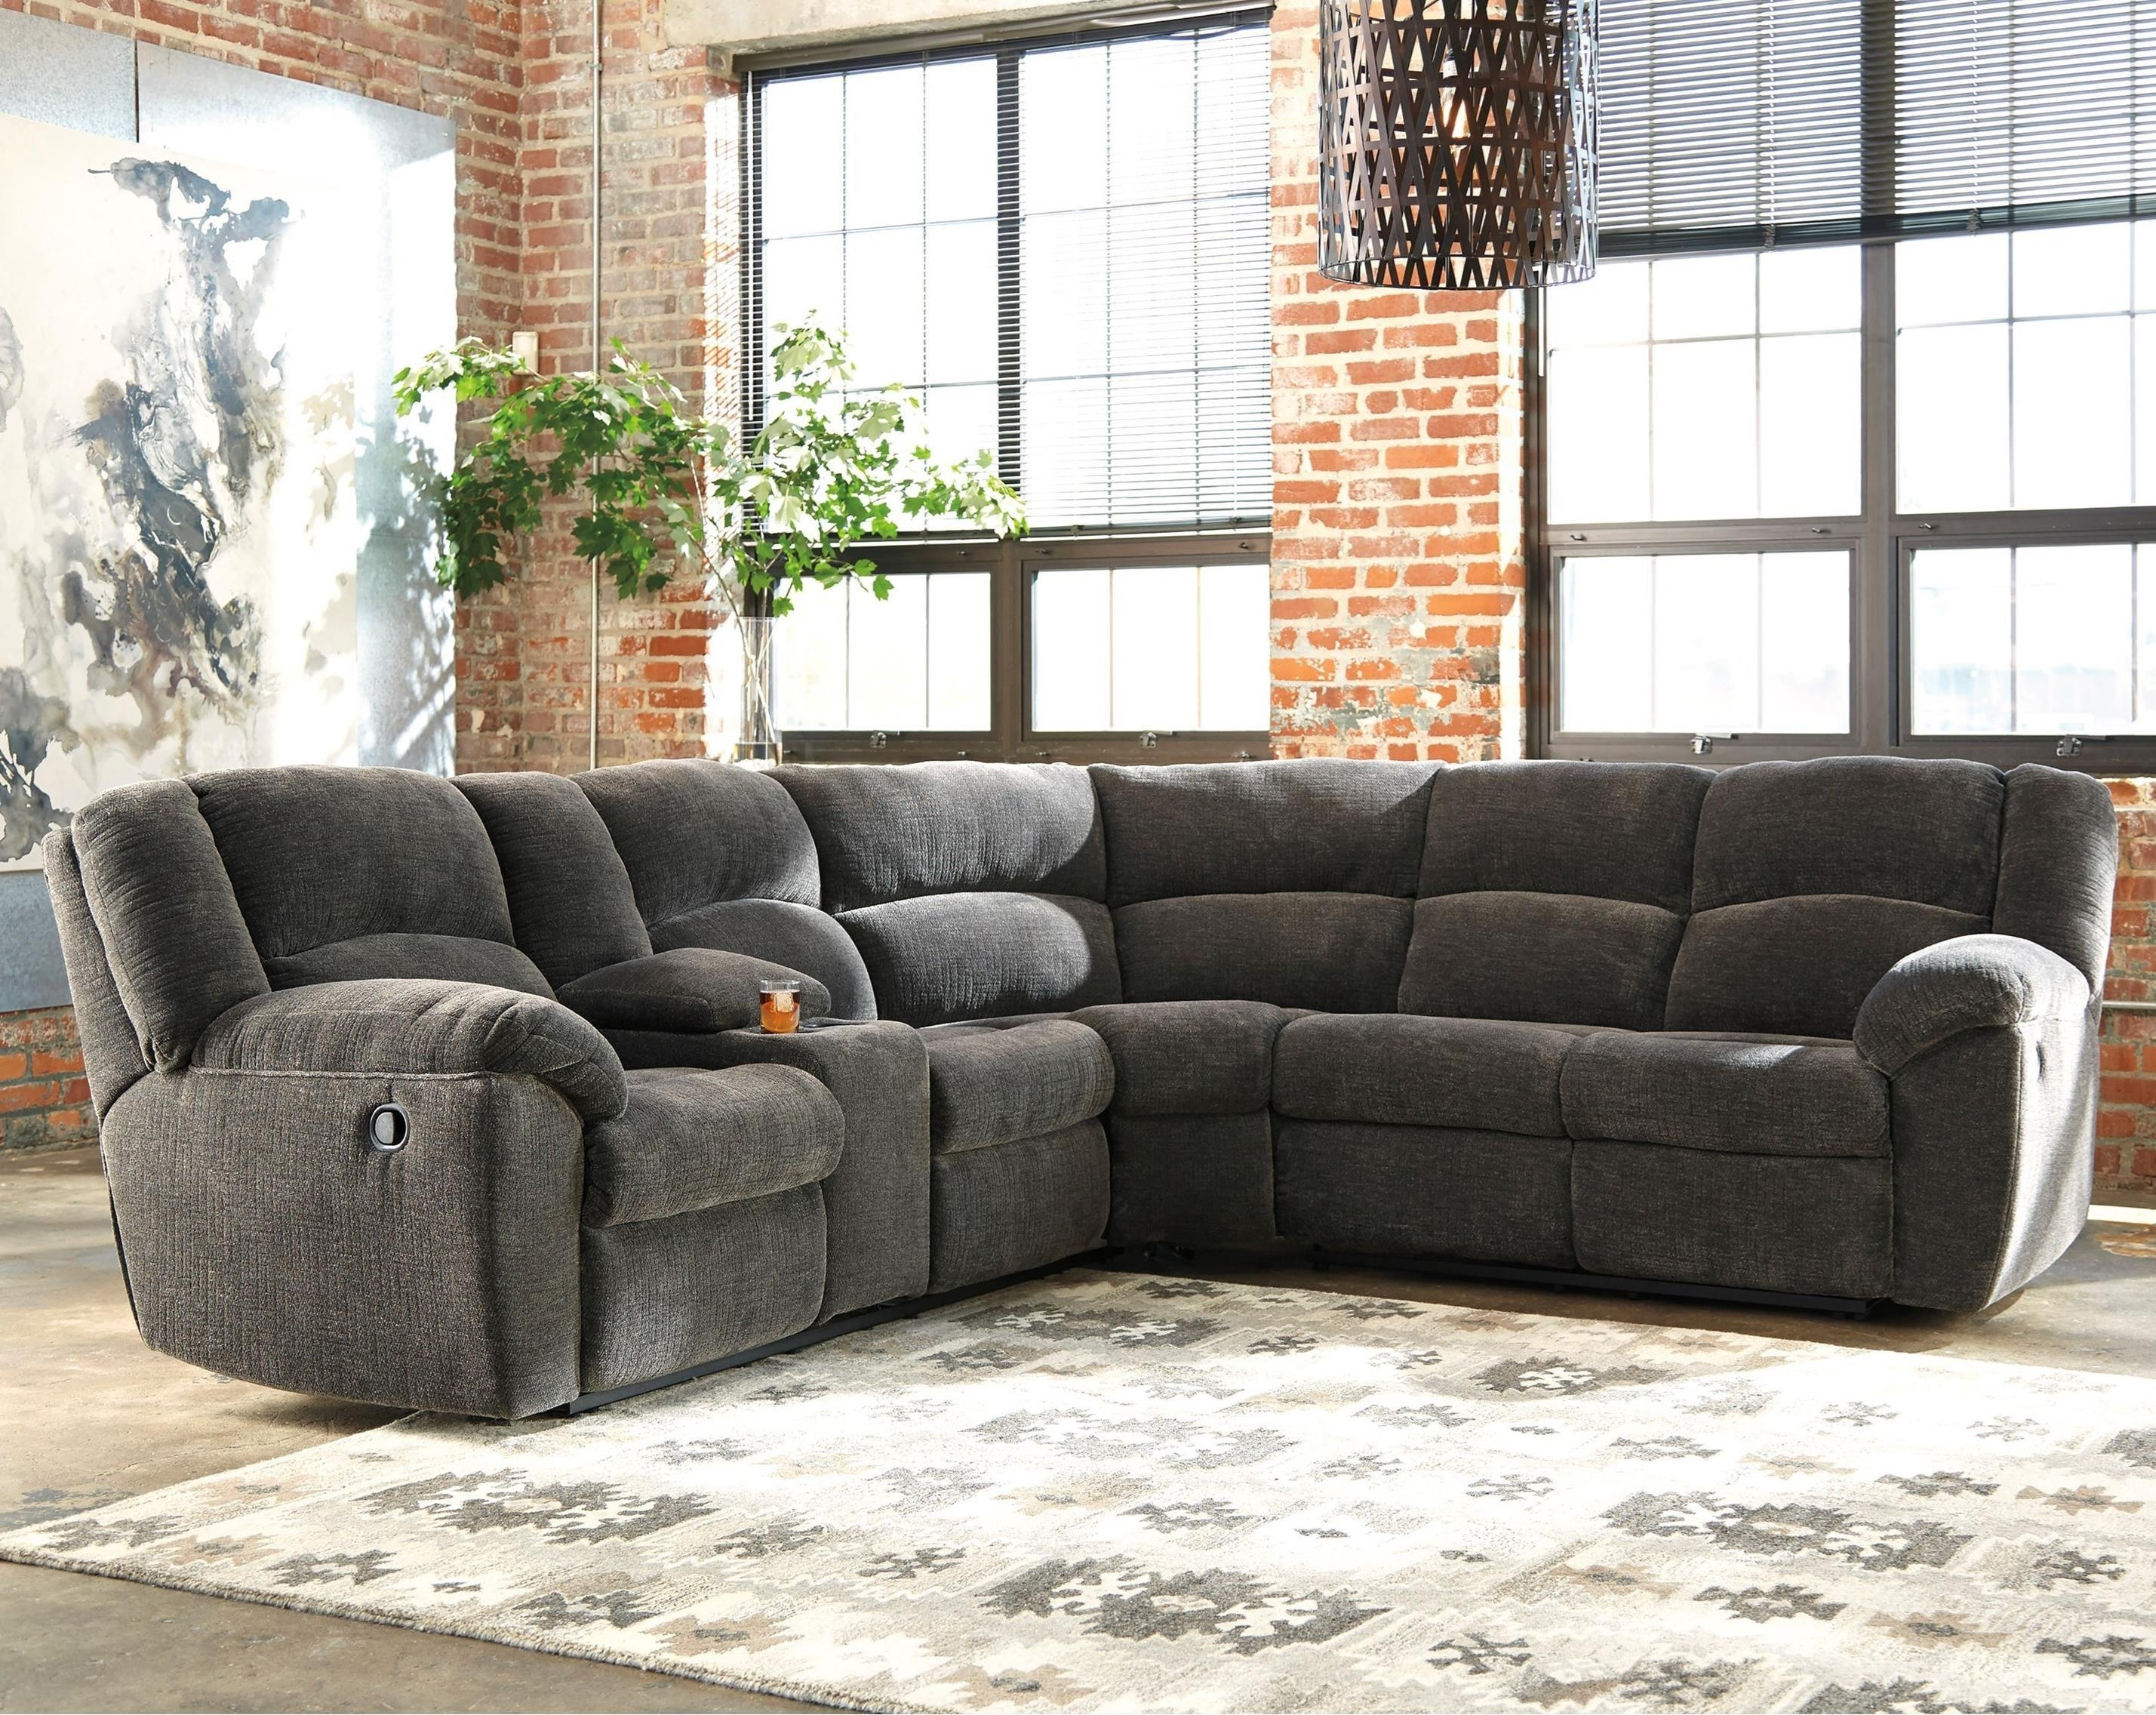 Benchcraft Timpson Reclining Sectional With Storage Console In Recliner Sectional Sofas (Image 3 of 22)